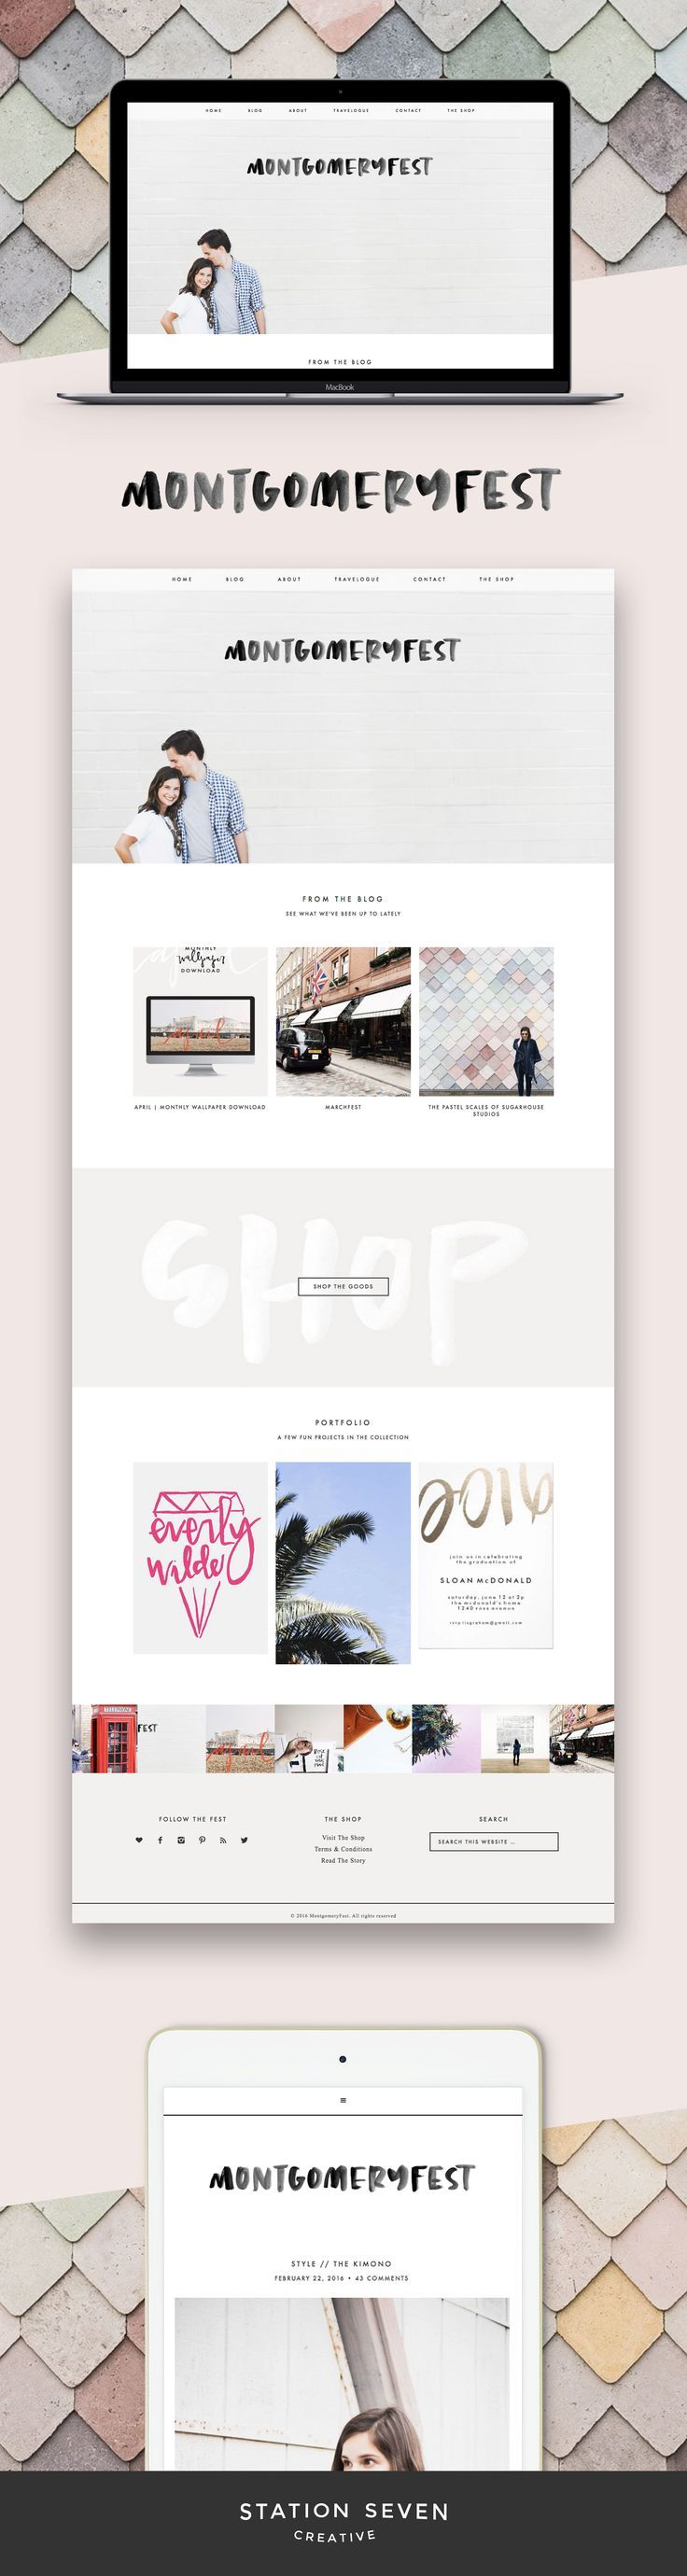 Sweet and simple blog by Montgomery Fest running on Station Seven's Coastal WordPress theme.